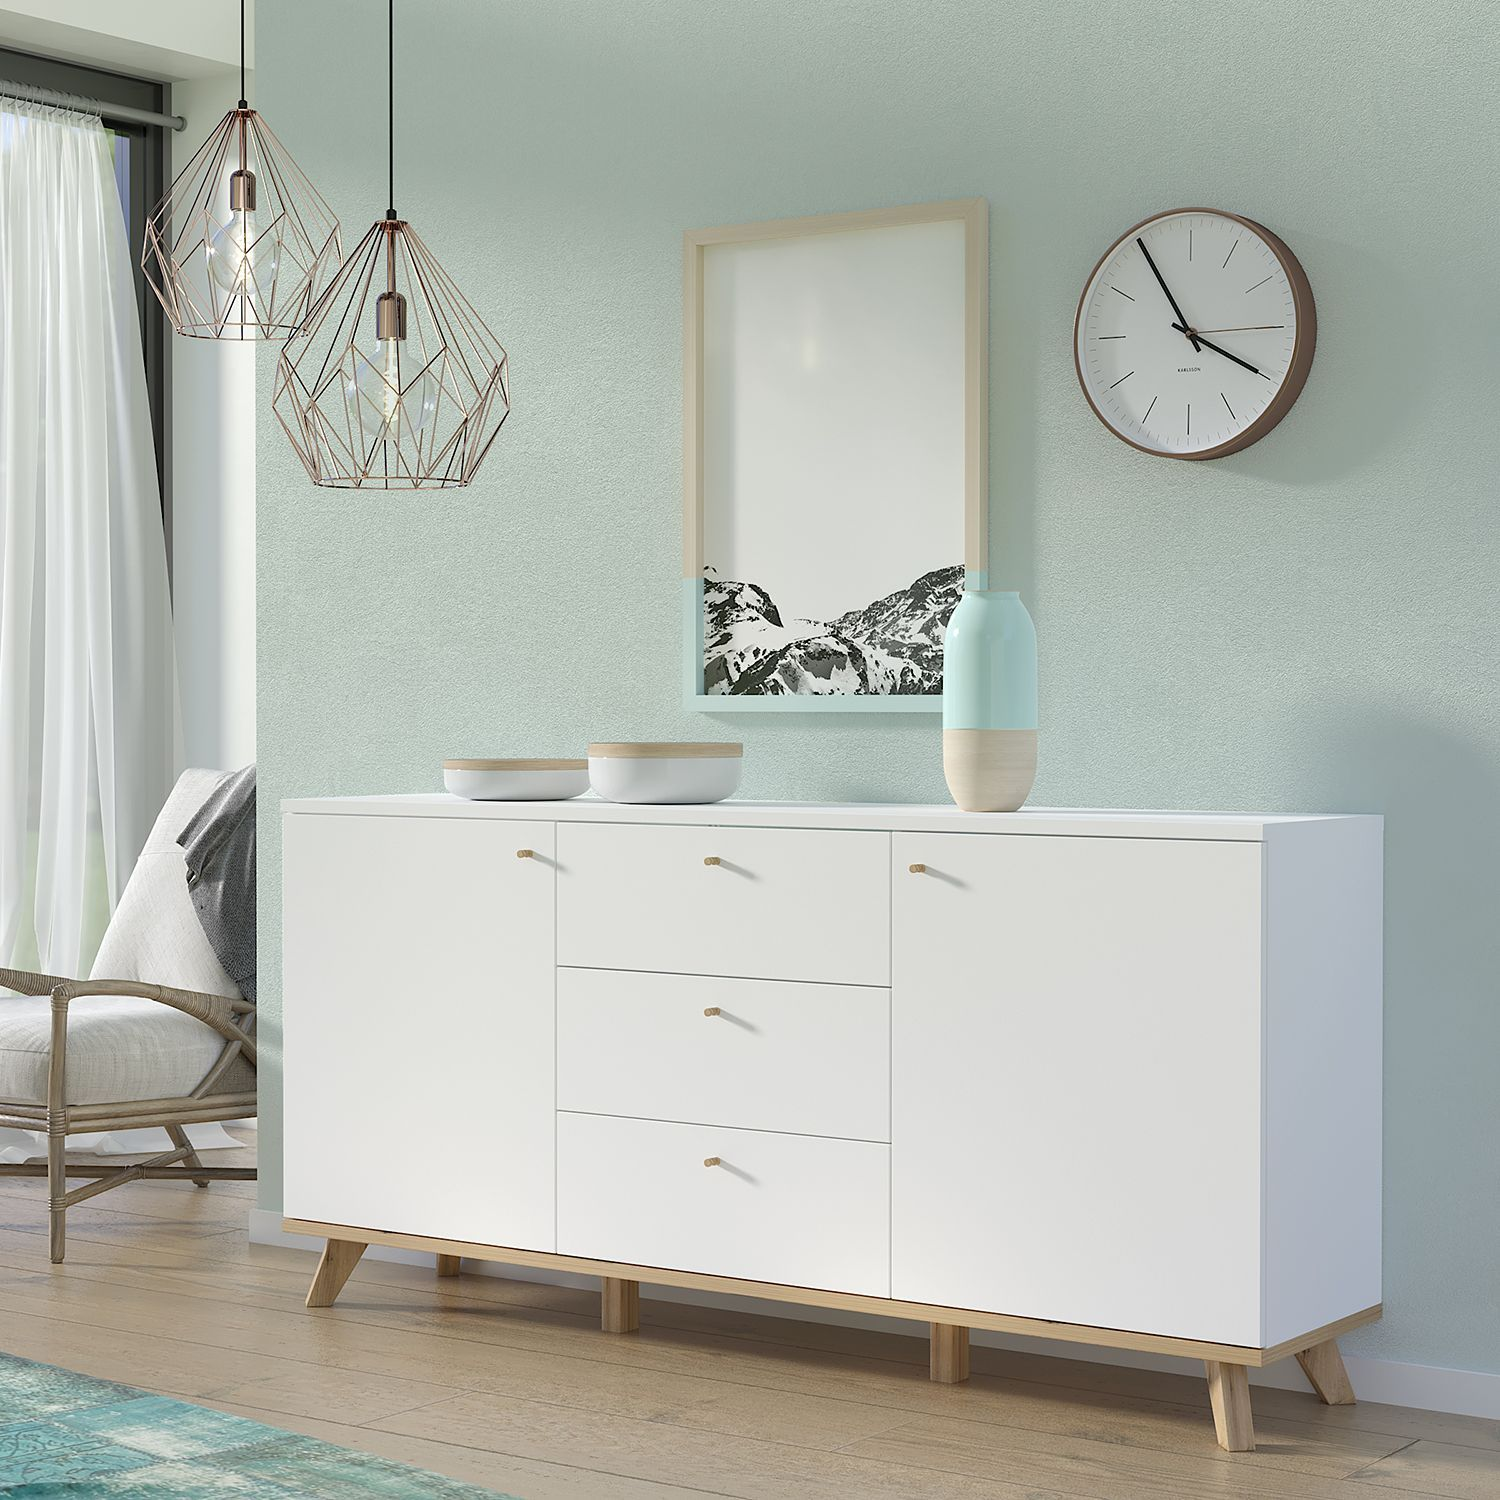 Home24 Sideboard Skoger Home Decor Sideboard Furniture